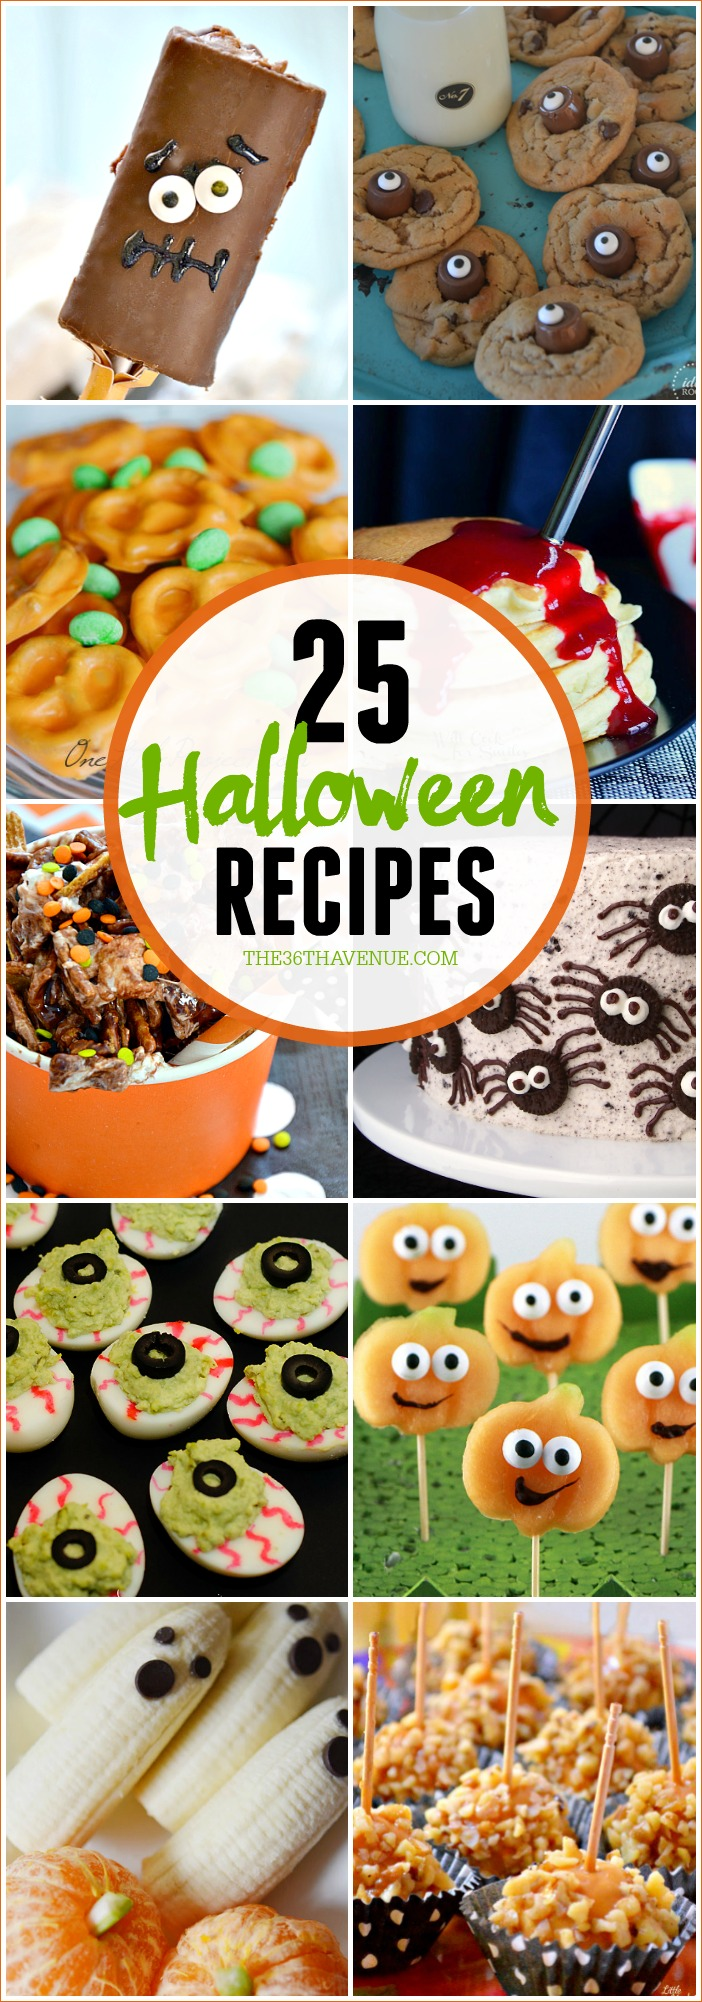 Halloween Recipes that are easy to make and fun to eat!